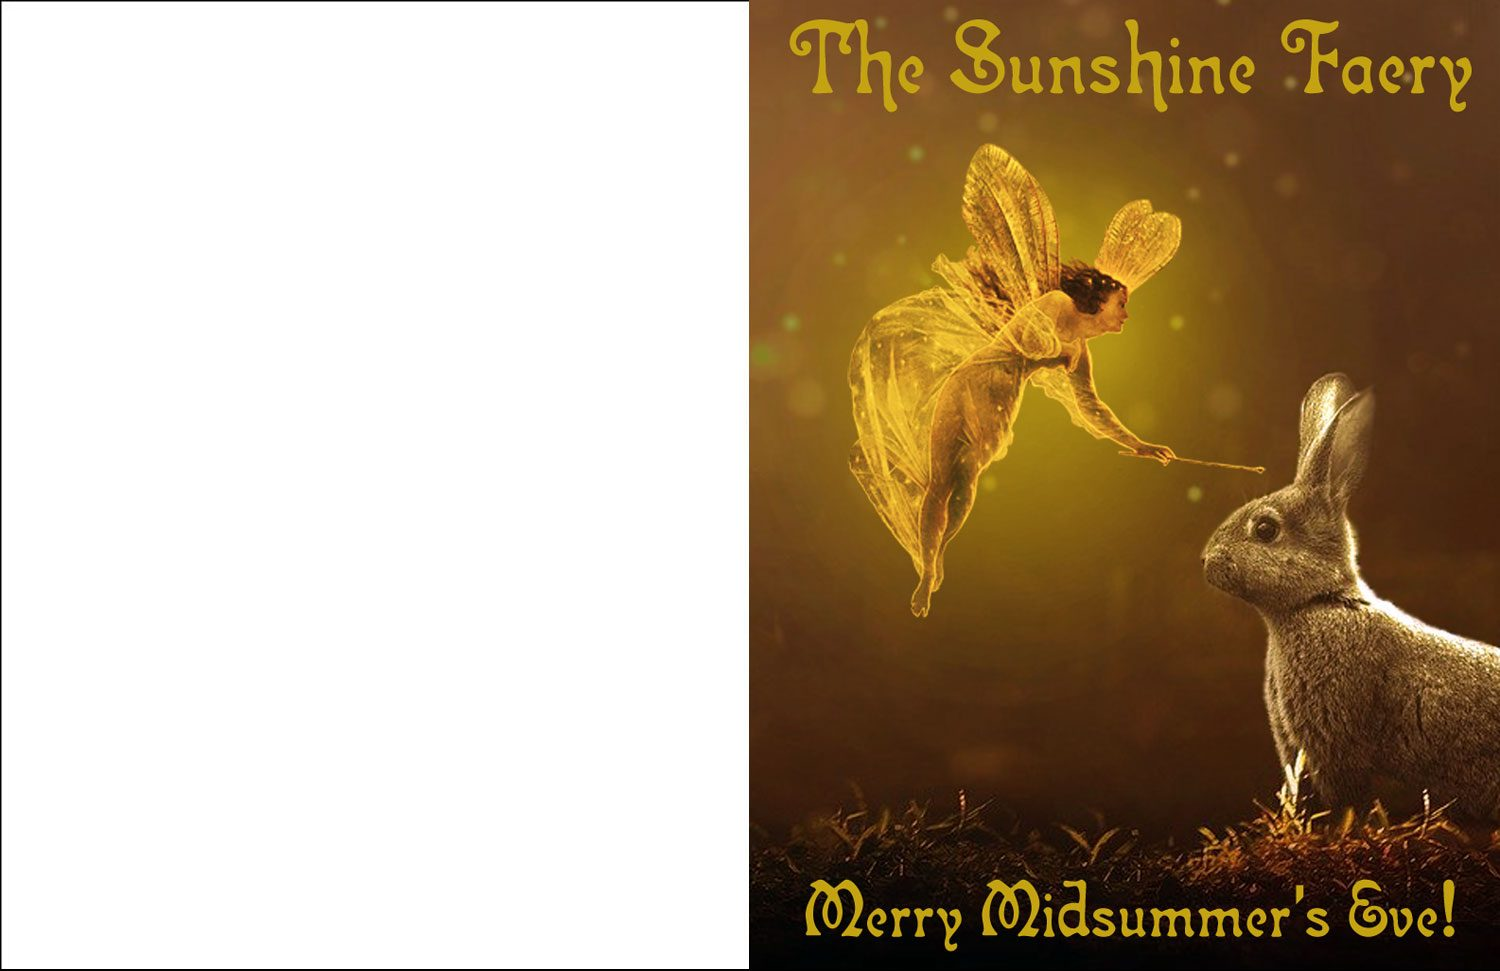 A printable card to say merry midsummer's eve, picturing the Sunshine Faery